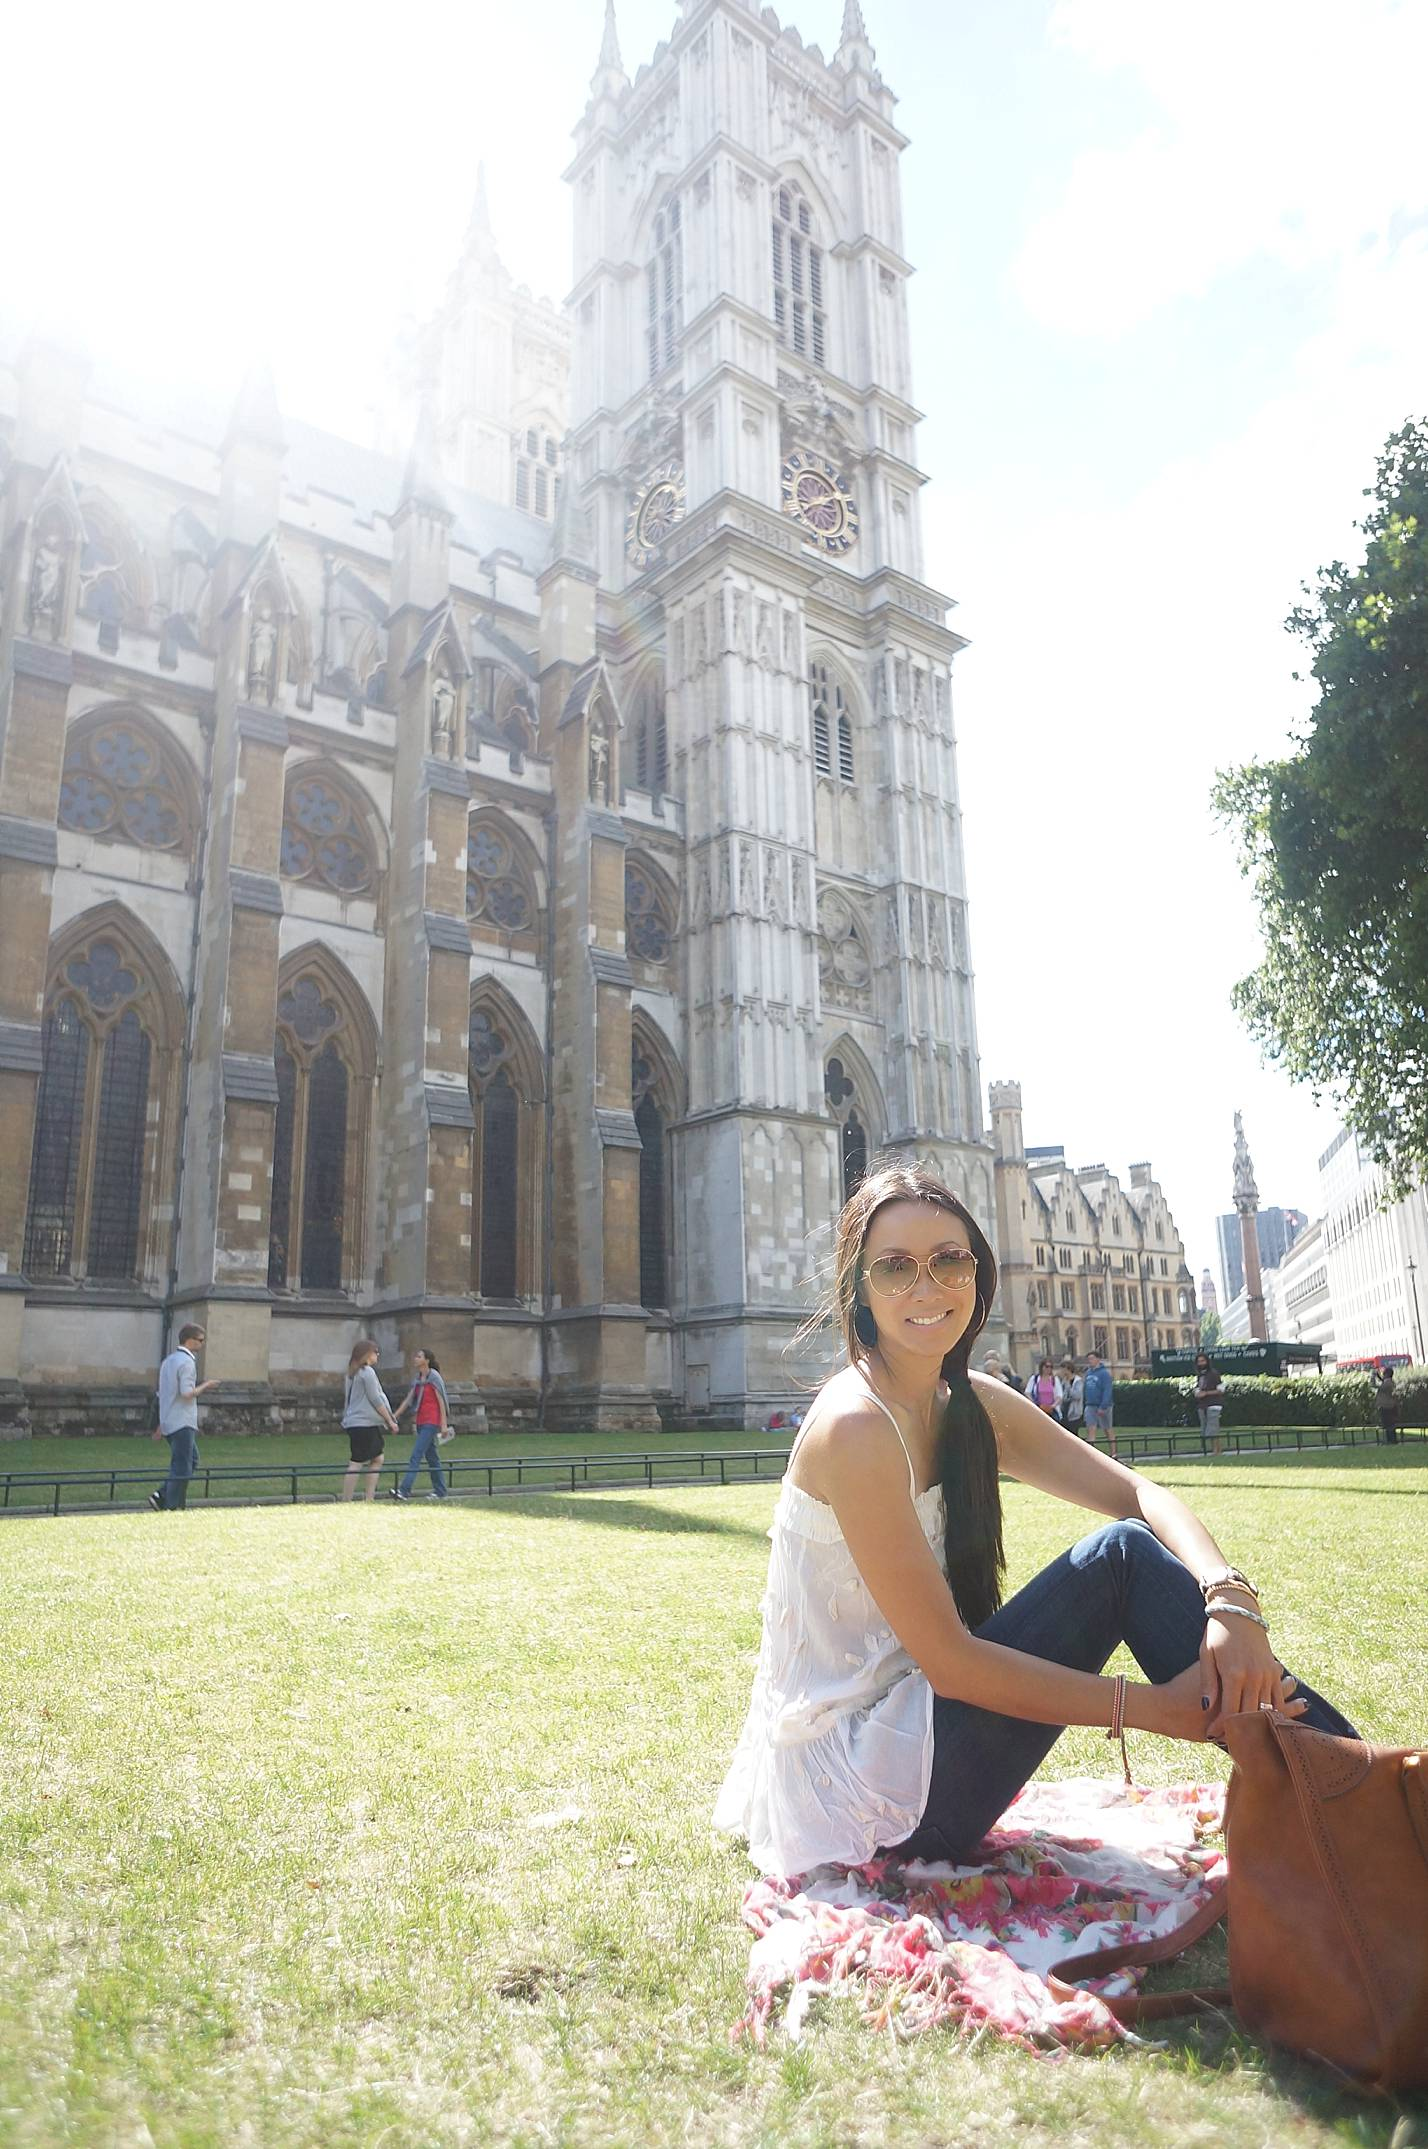 sitting on lawn of Westminster abbey